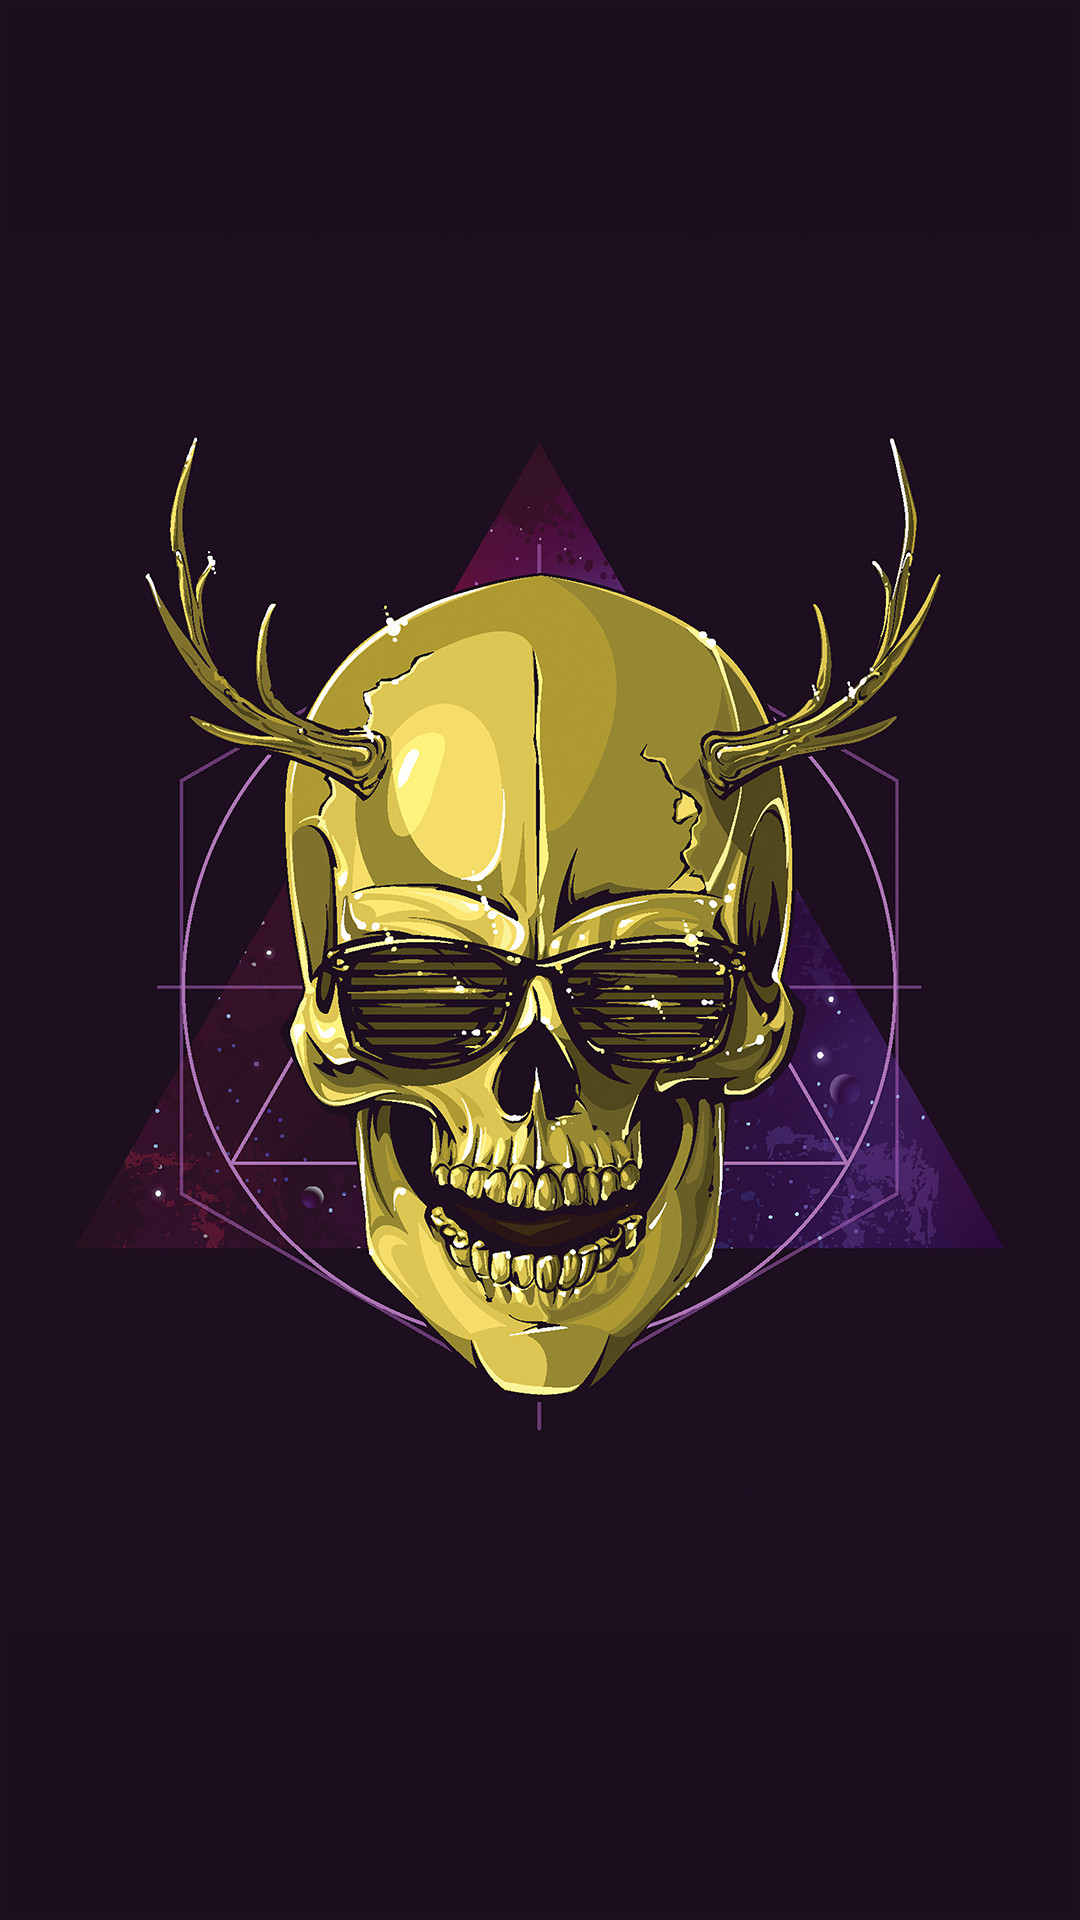 … ios devices; hipster skull hd wallpaper for your mobile phone